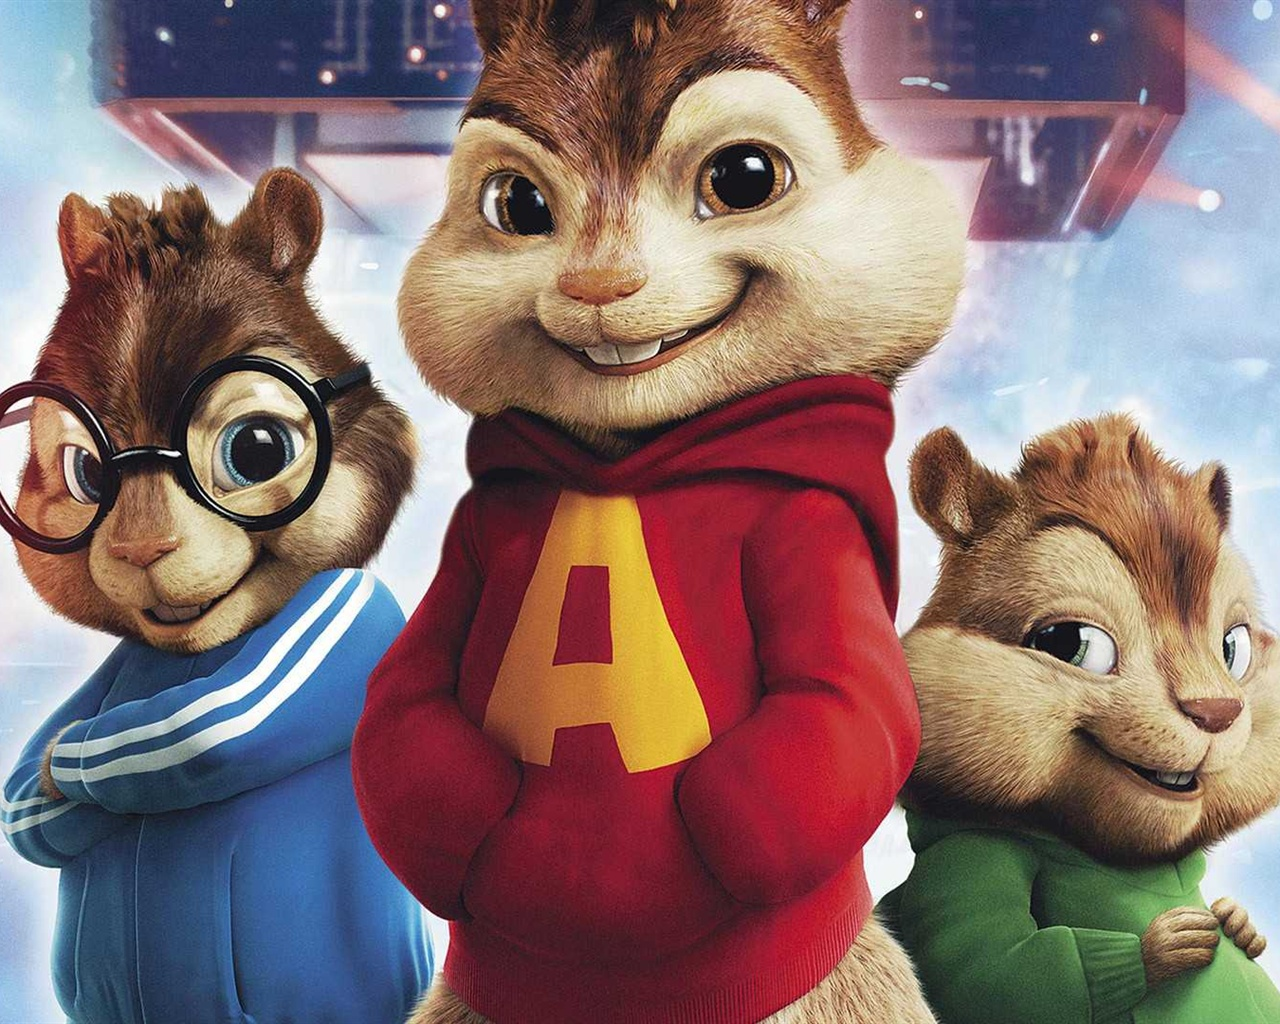 Wallpaper Alvin And The Chipmunks 1920x1080 Full Hd 2k Picture Image